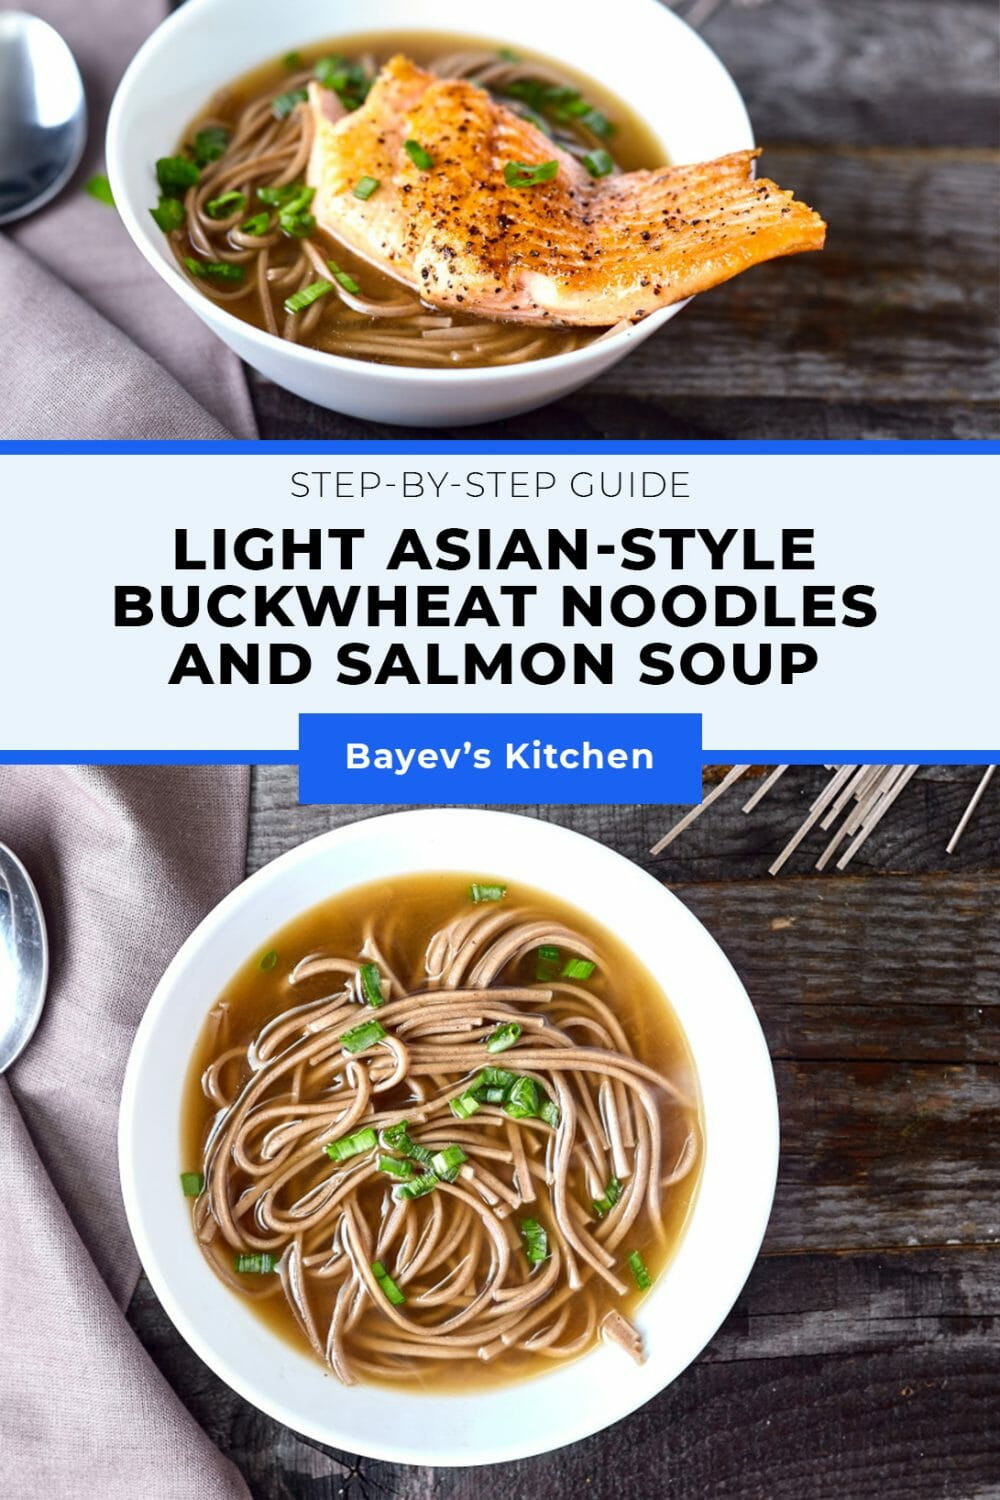 The main advantage of this soup is that you don't need any exotic ingredients. The one that you might have problems with finding is buckwheat noodles. In case you are the one it has happened to, on an exceptional basis I'll let you replace it with rice or wheat Chinese noodles. The taste of soup highly depends on the broth. Preferably to cook it yourself, but in this case, we'll waste time and mobility. Personally I used a bouillon cube, but it's totally up to you. #souprecipes #asiansoups